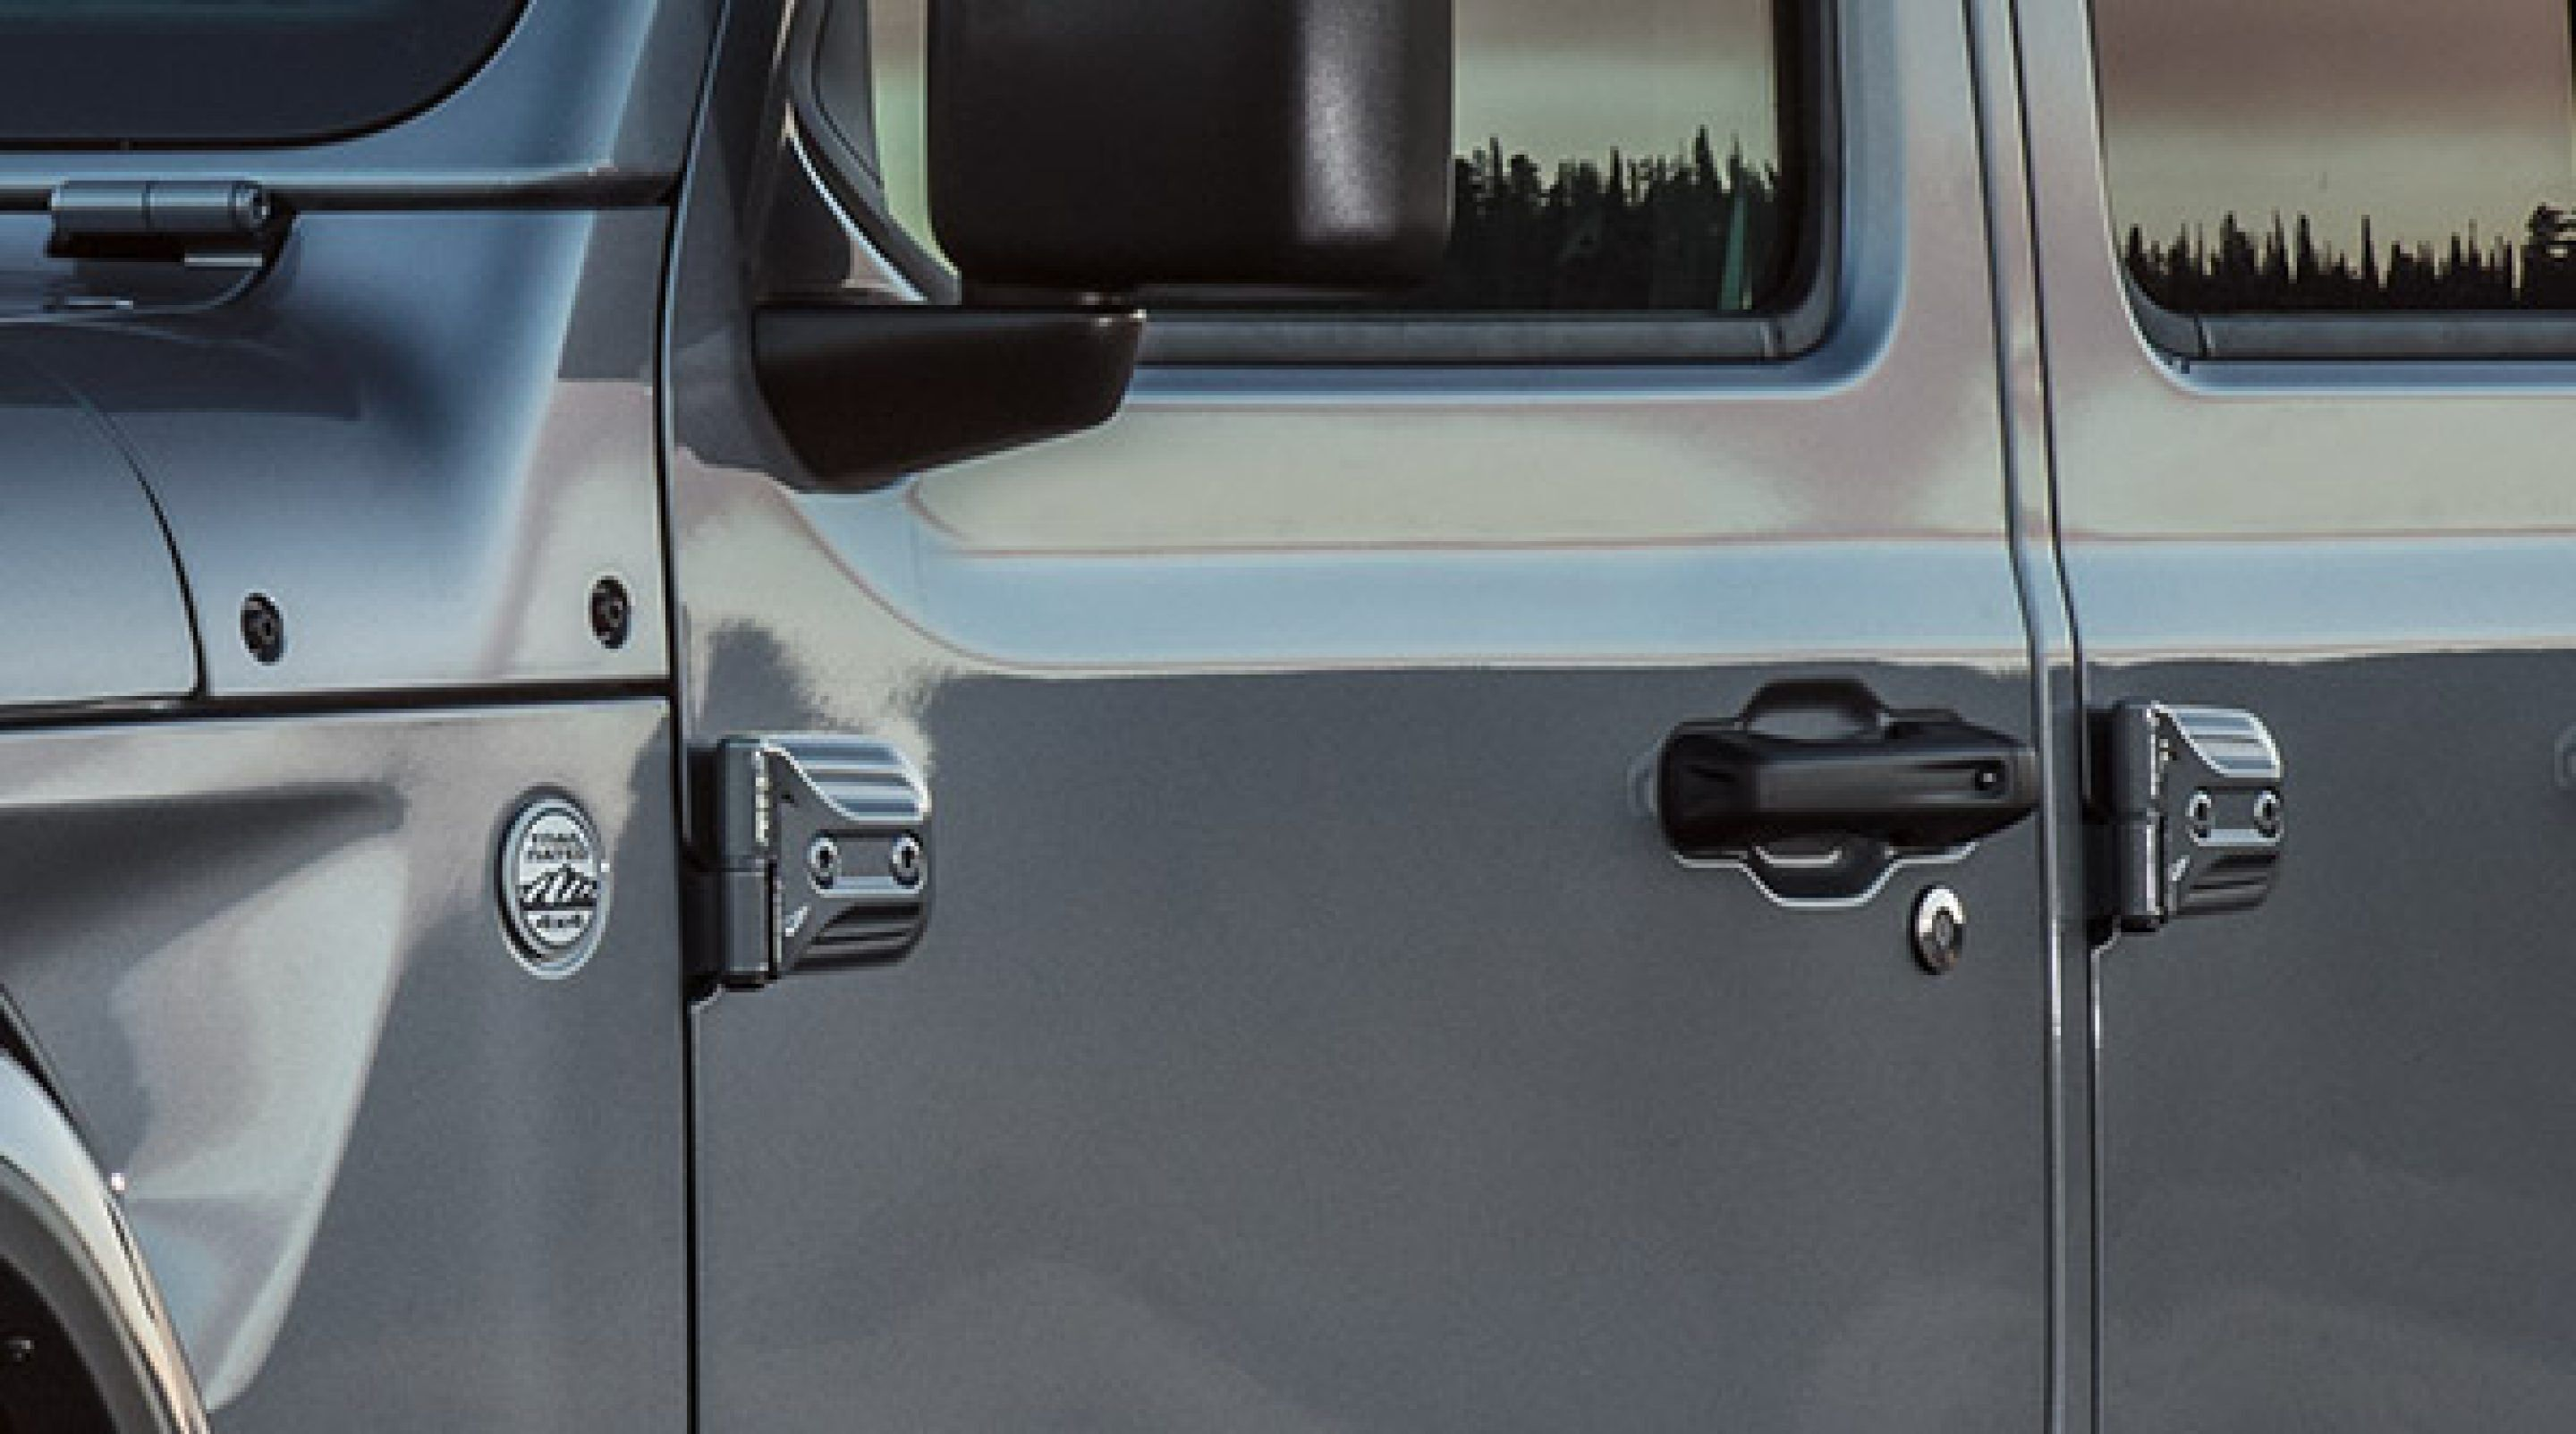 2020-Jeep-Gladiator-Safety-Convenience-Passive-Entry.jpg.image.2880.jpg